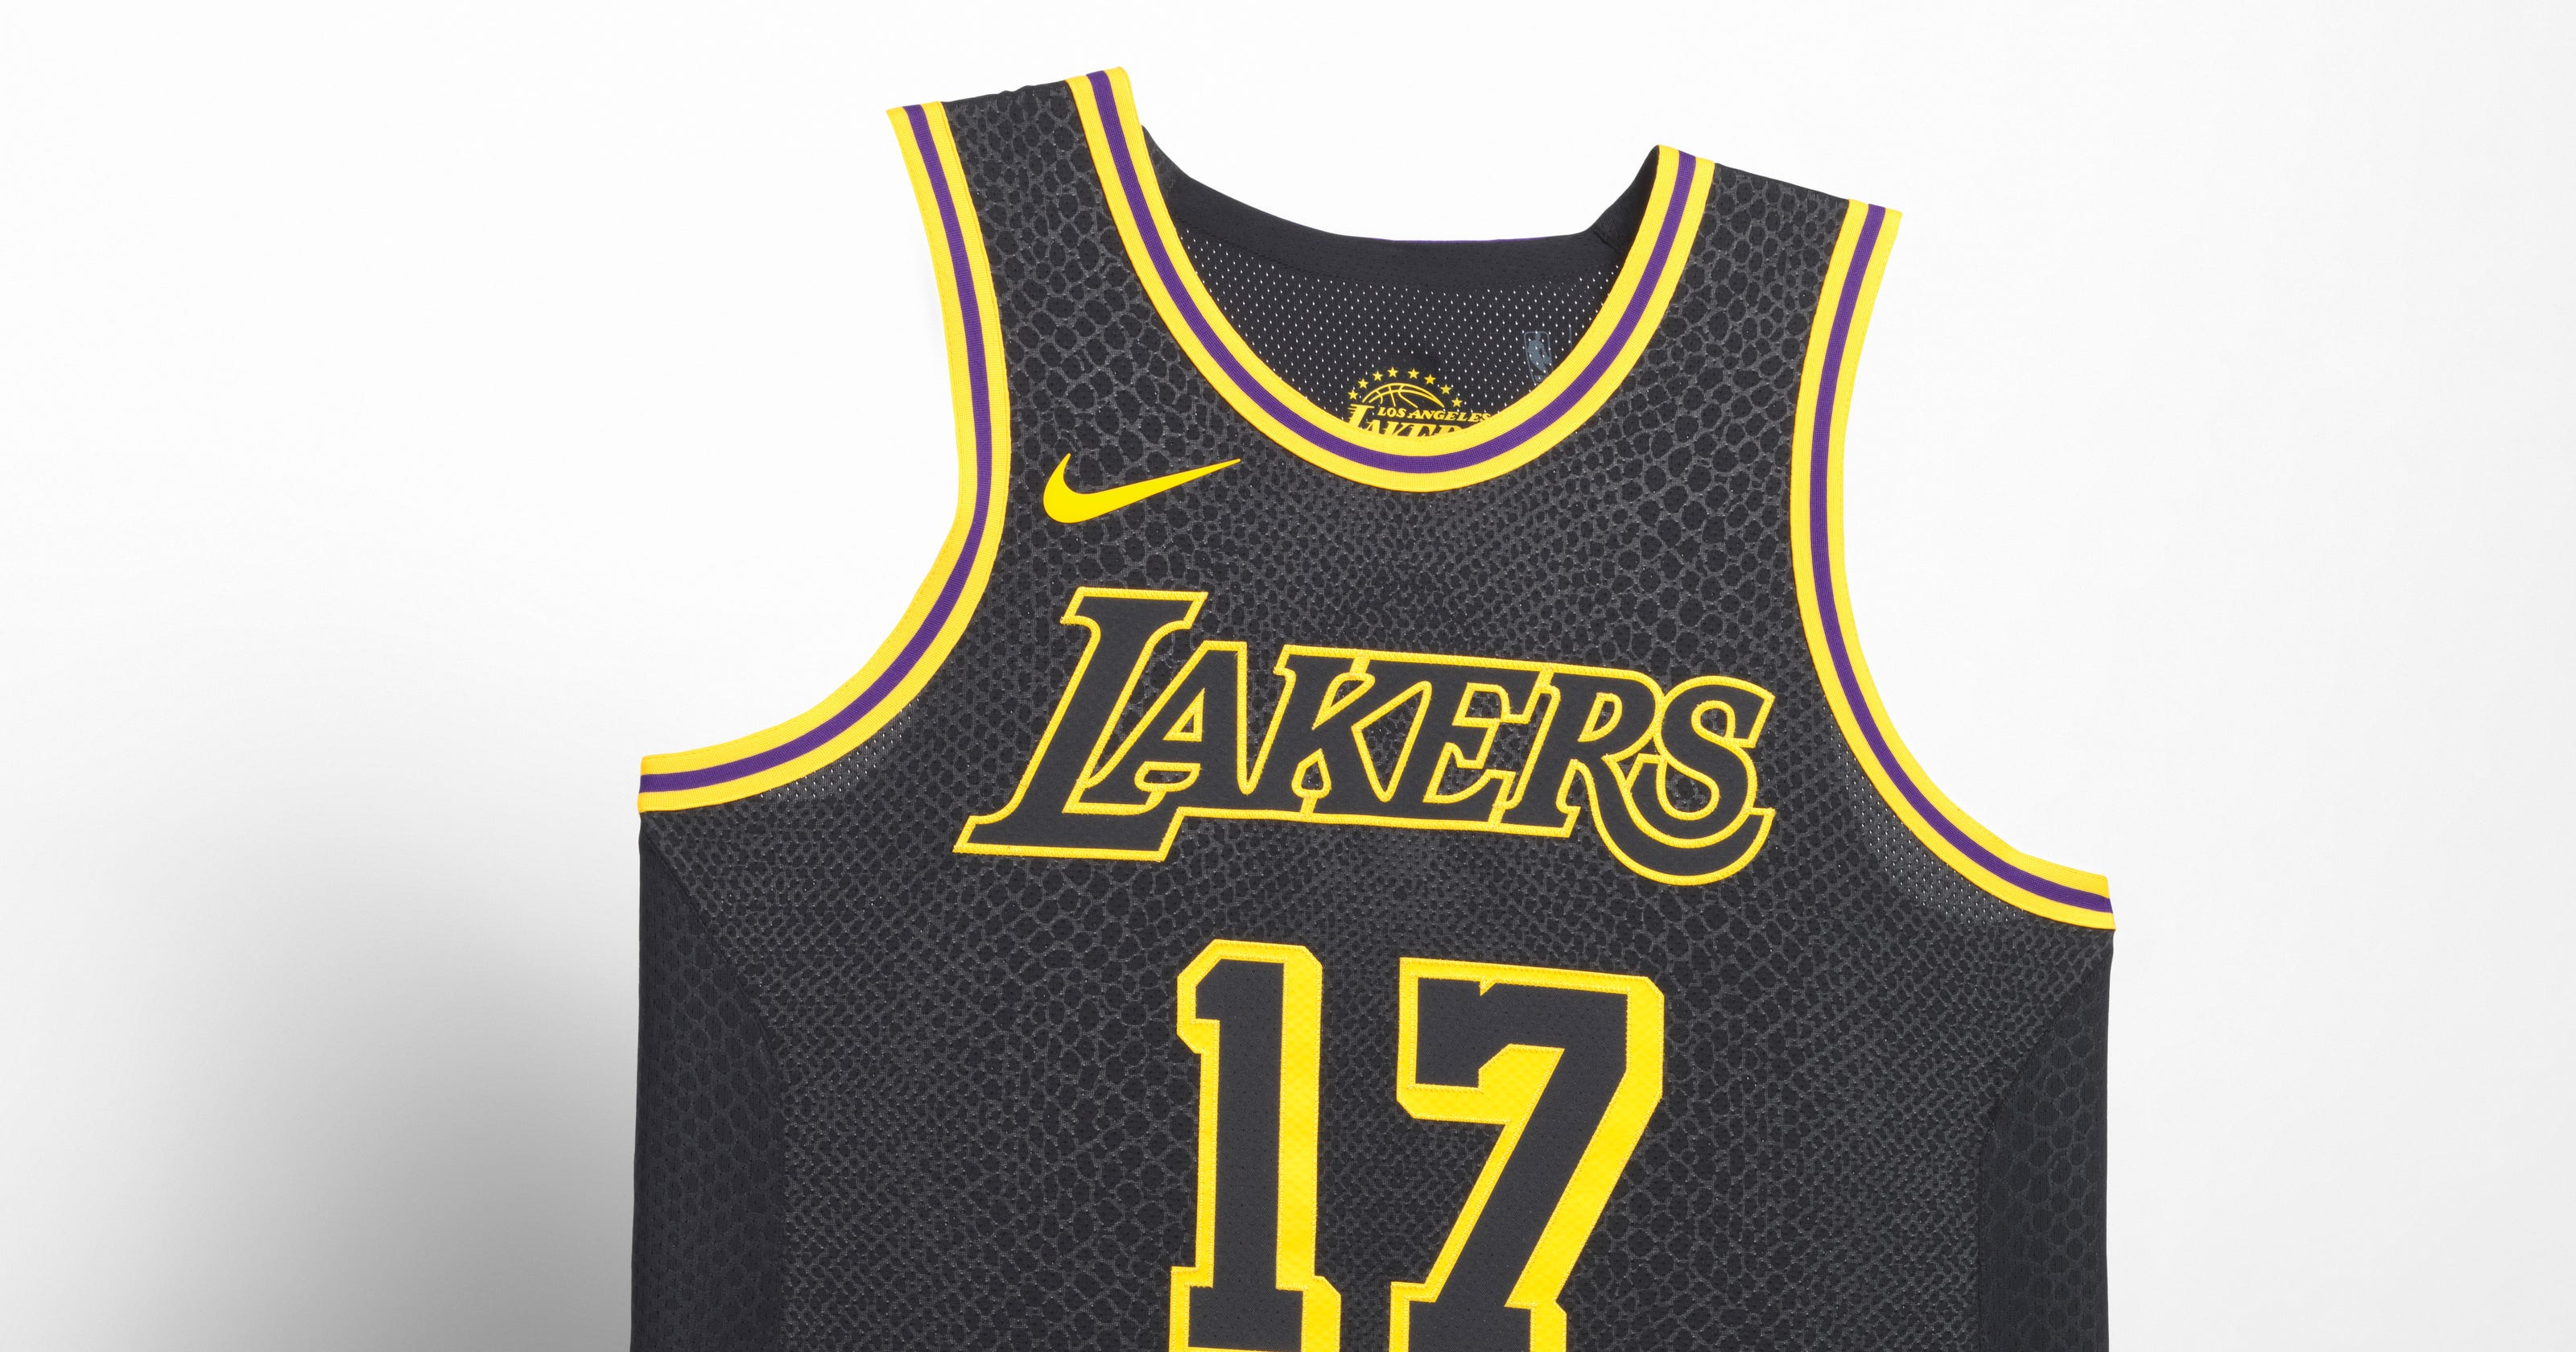 133ffb7ab Nike NBA City Edition uniforms  The story behind the design process